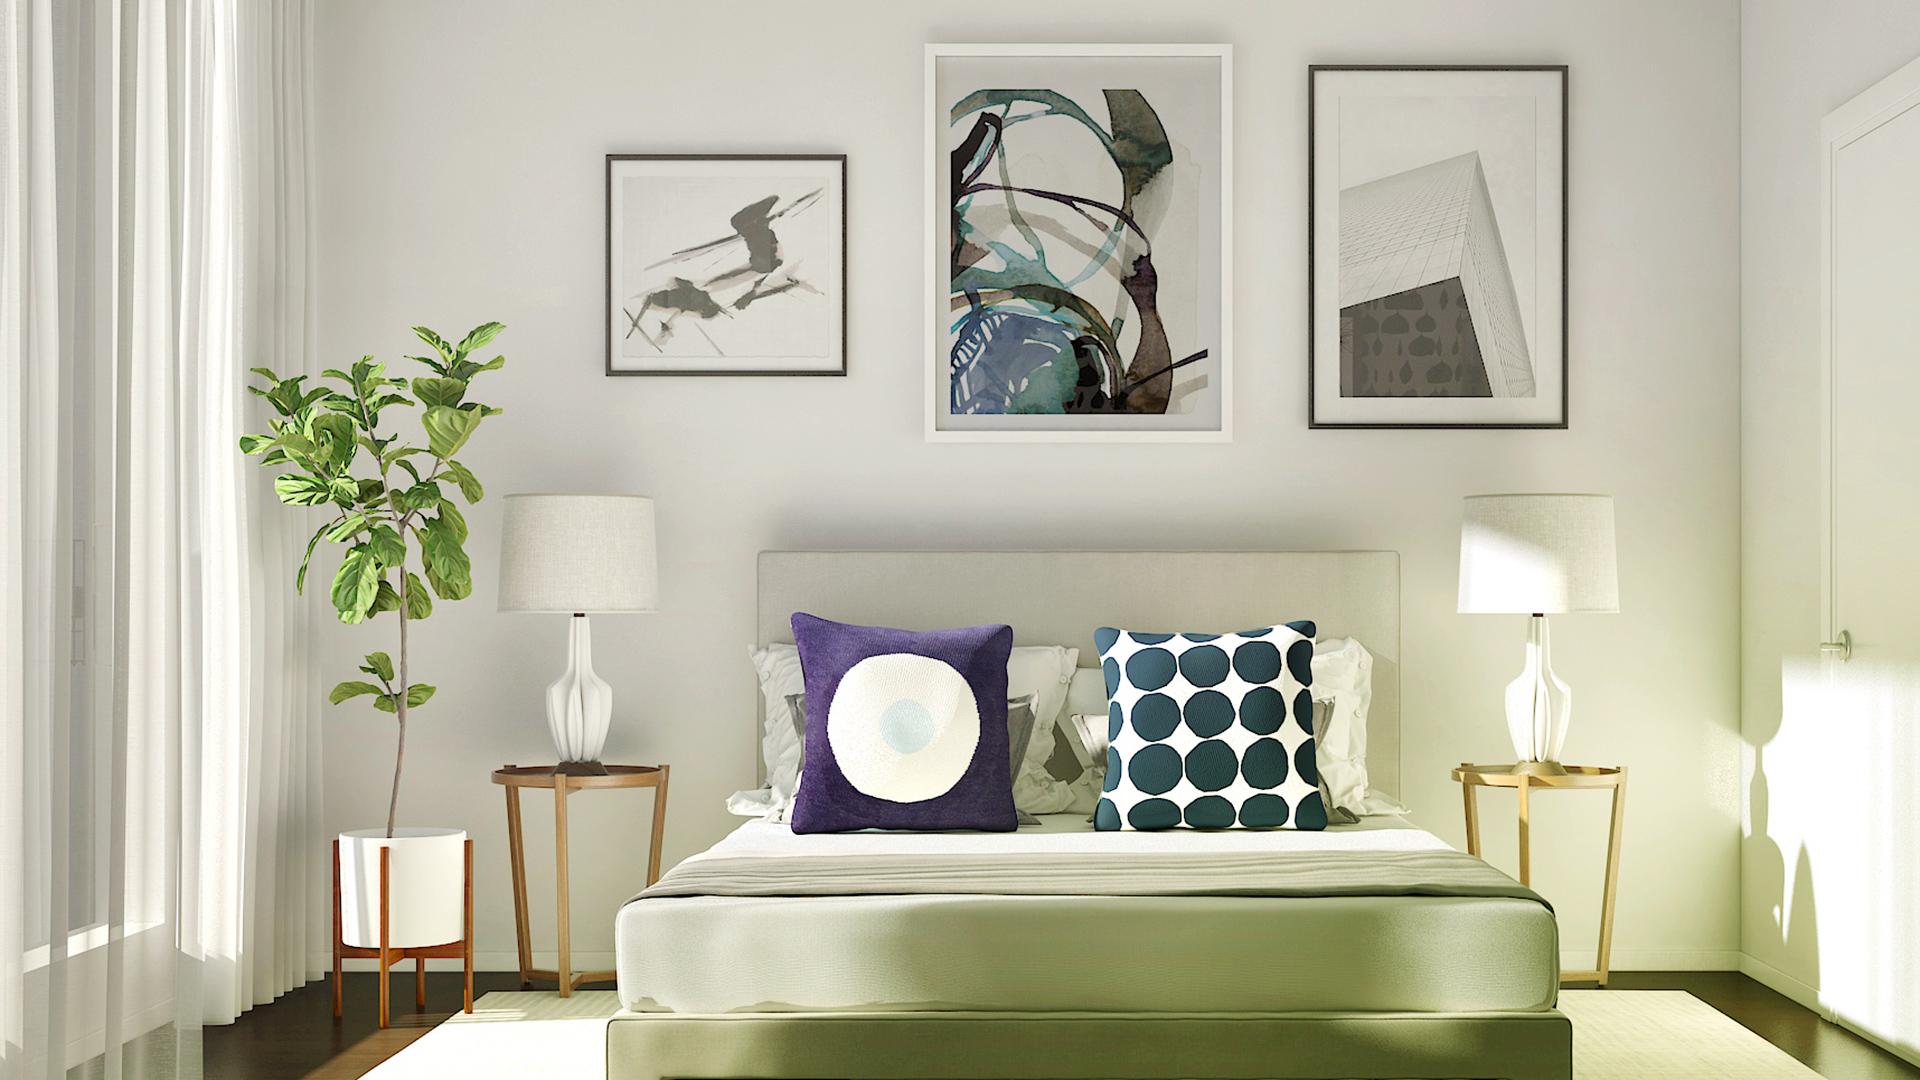 affordable this addictive homedesign app lets you uctry onud new decor with furniture  arrangement app.